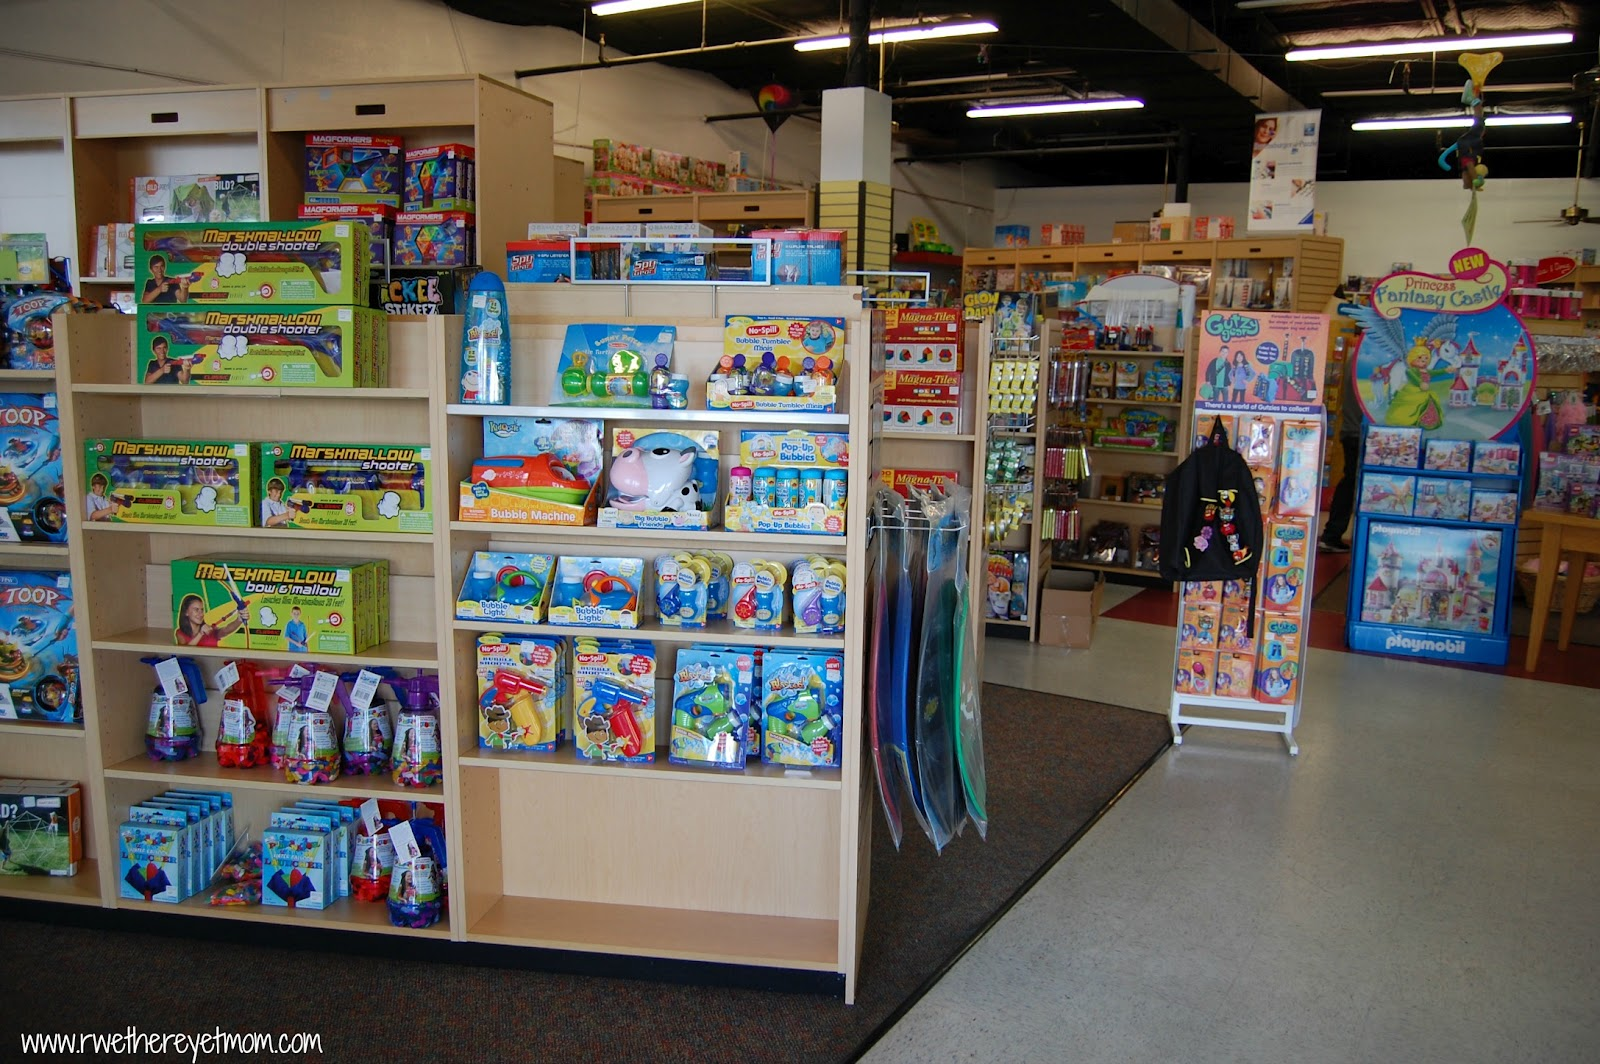 740e7d227698d Kaleidoscope Toys is more than a toy store. They bring in educational  programs for the community on a regular basis. This month